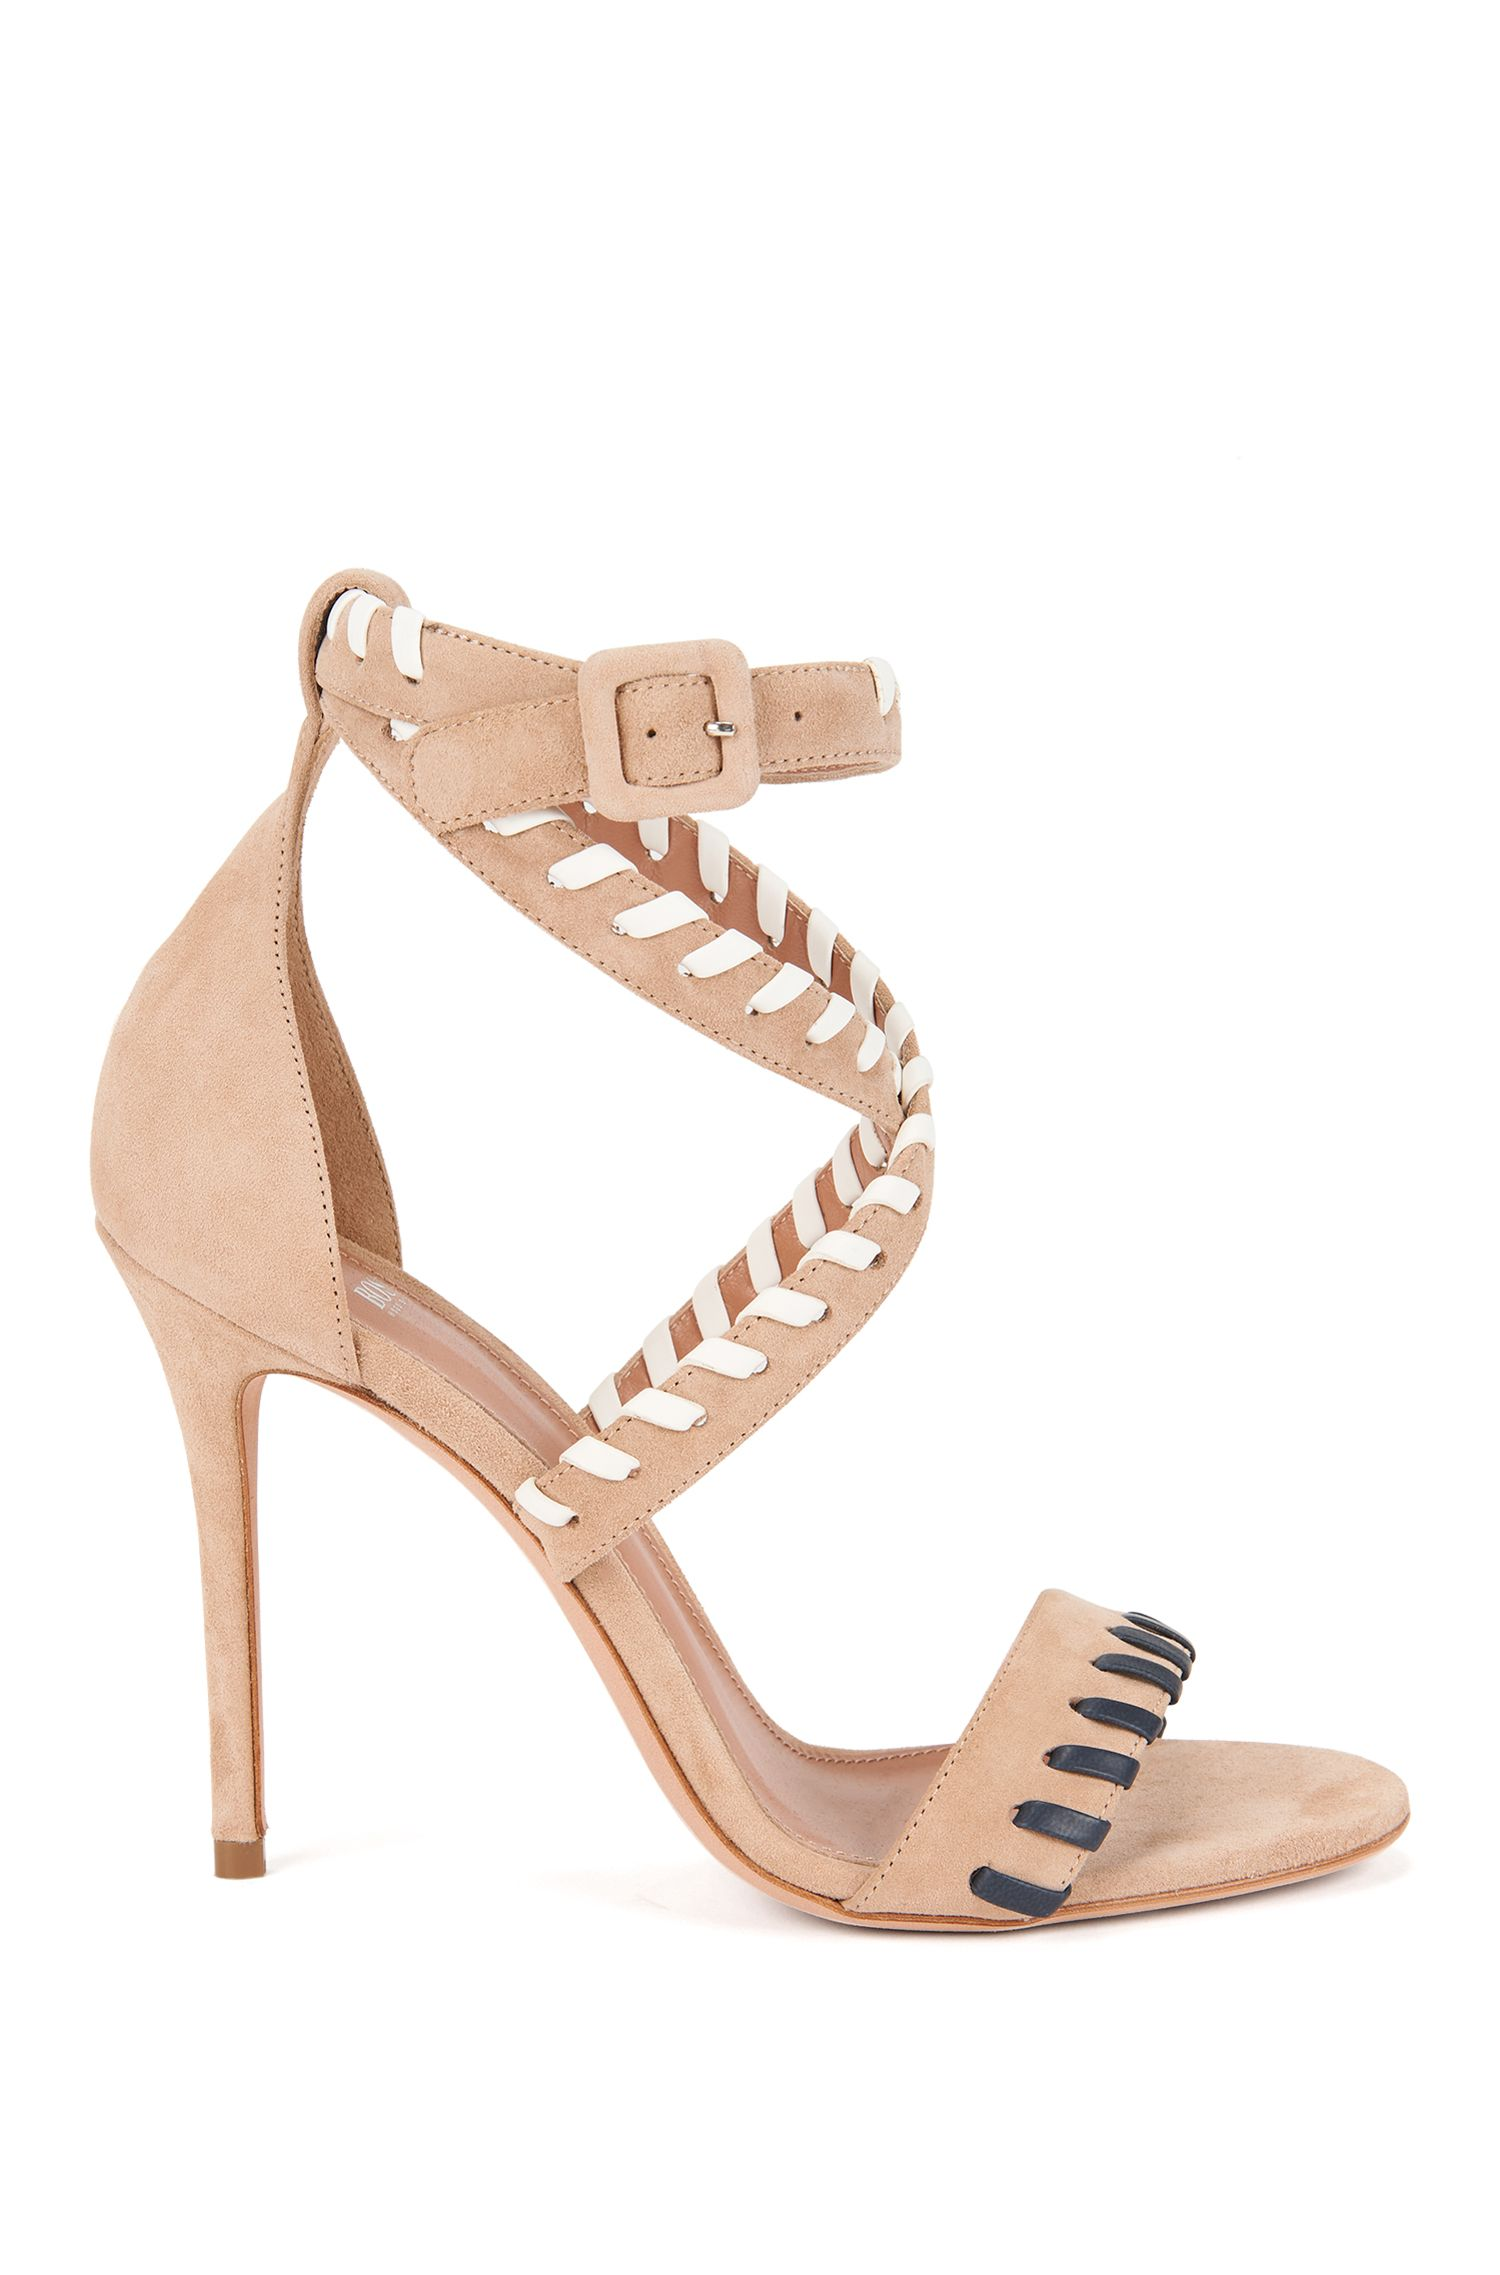 Suede sandals with leather whipstitch trim